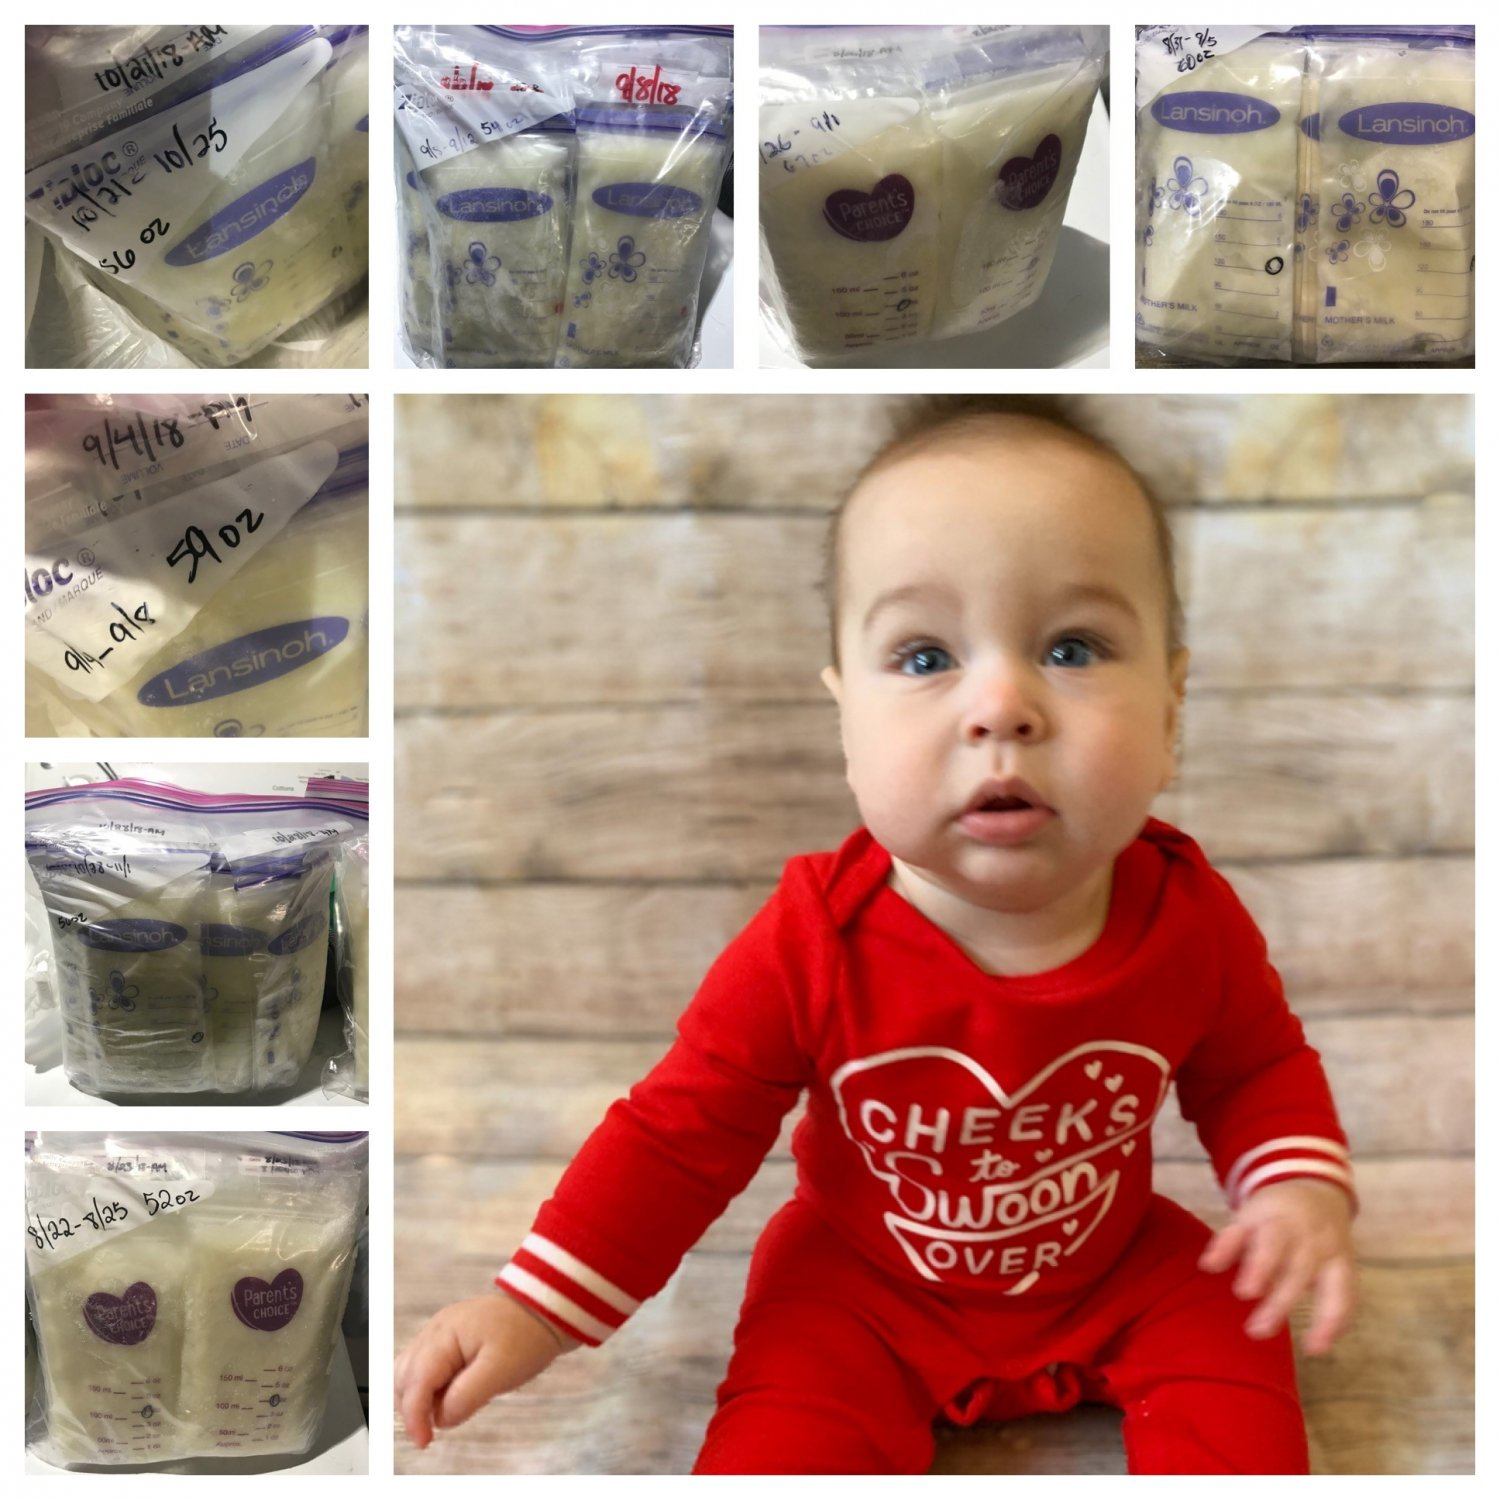 Photo collage of baby and bags of frozen breastmilk